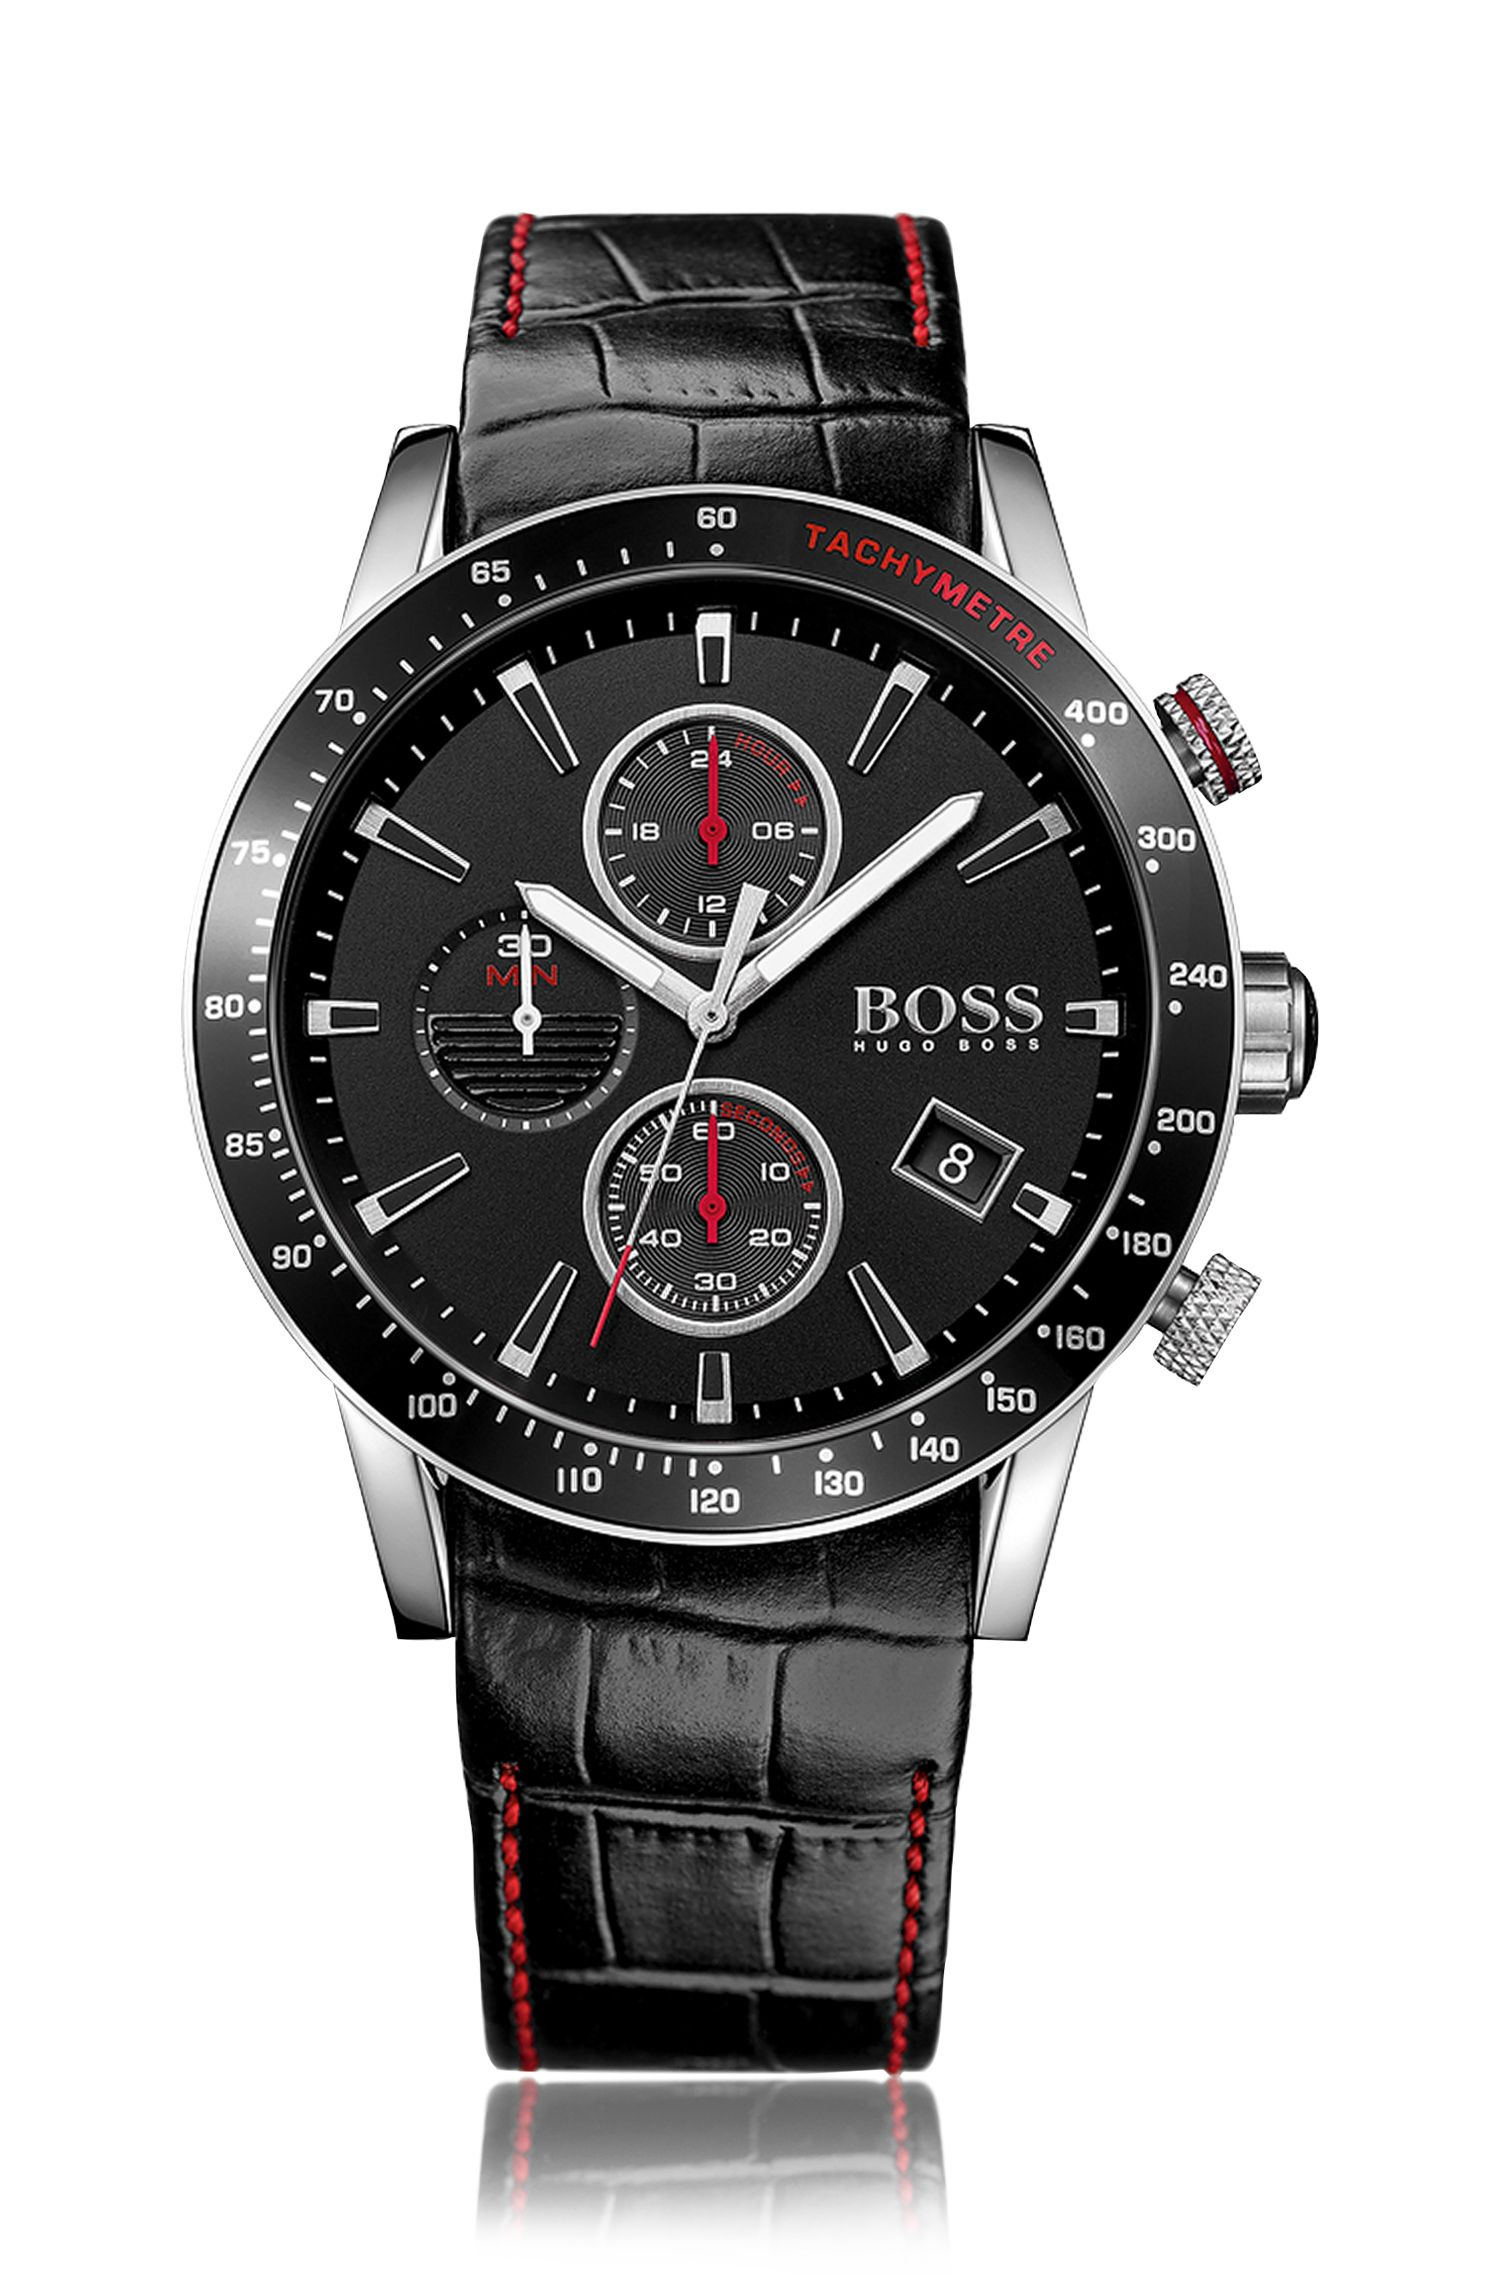 Black stainless-steel chronograph watch with black dial and leather strap